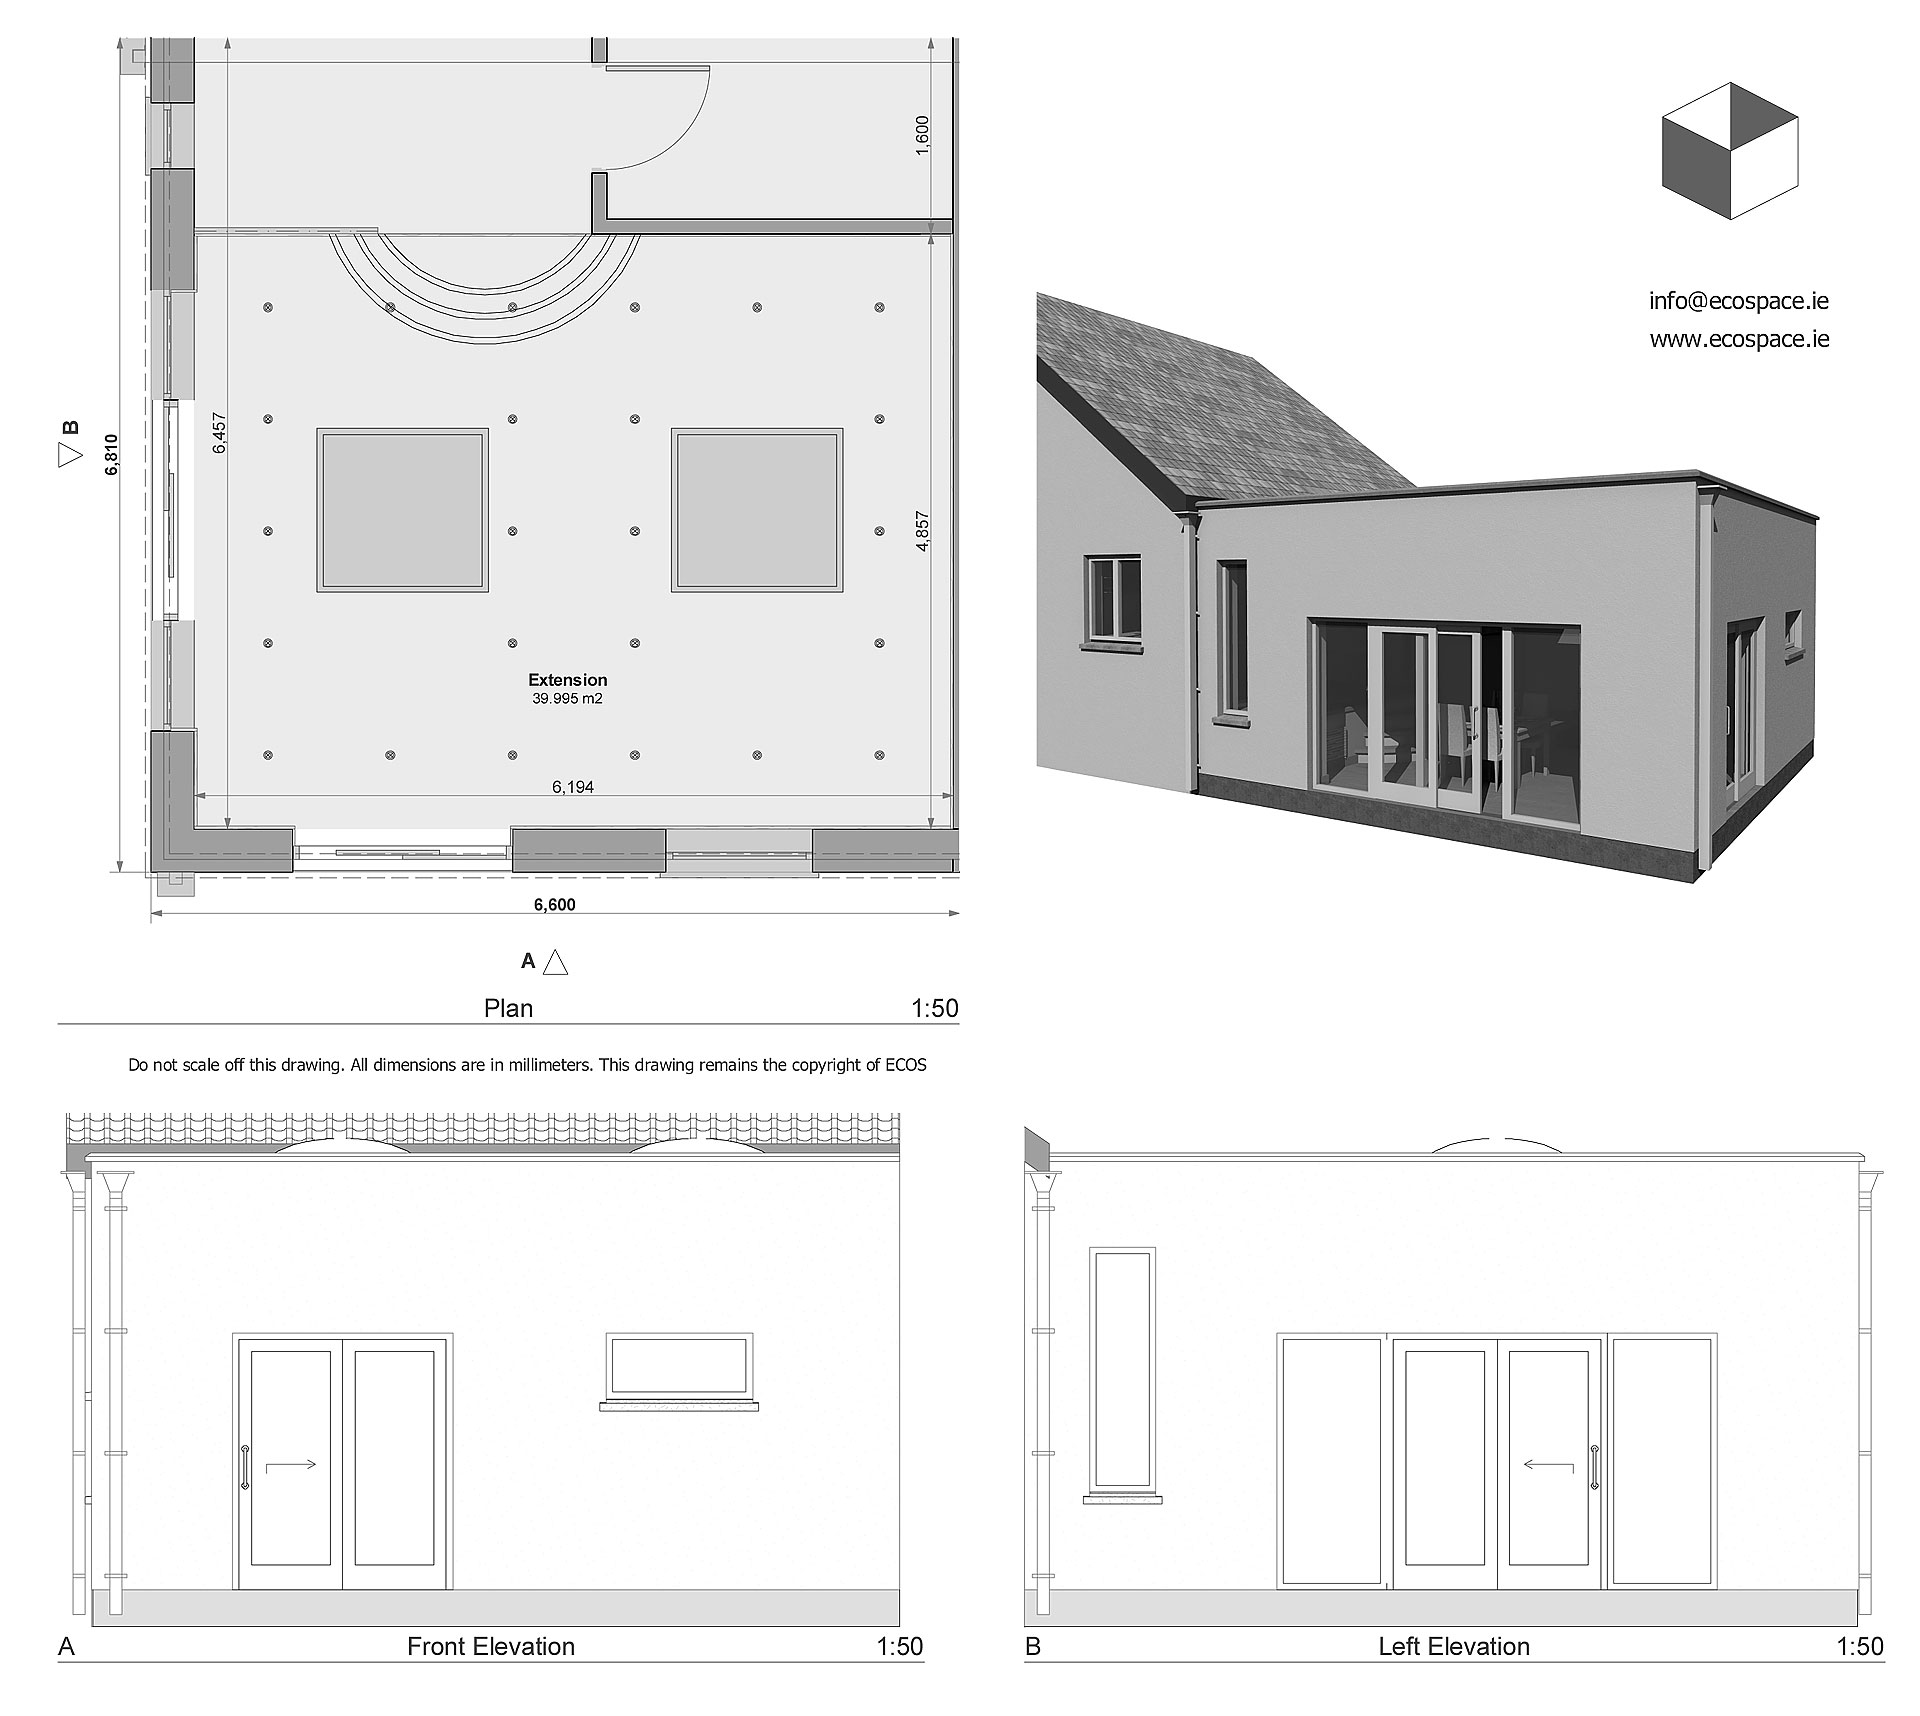 Living room house extension design idea. Dublin, Ireland